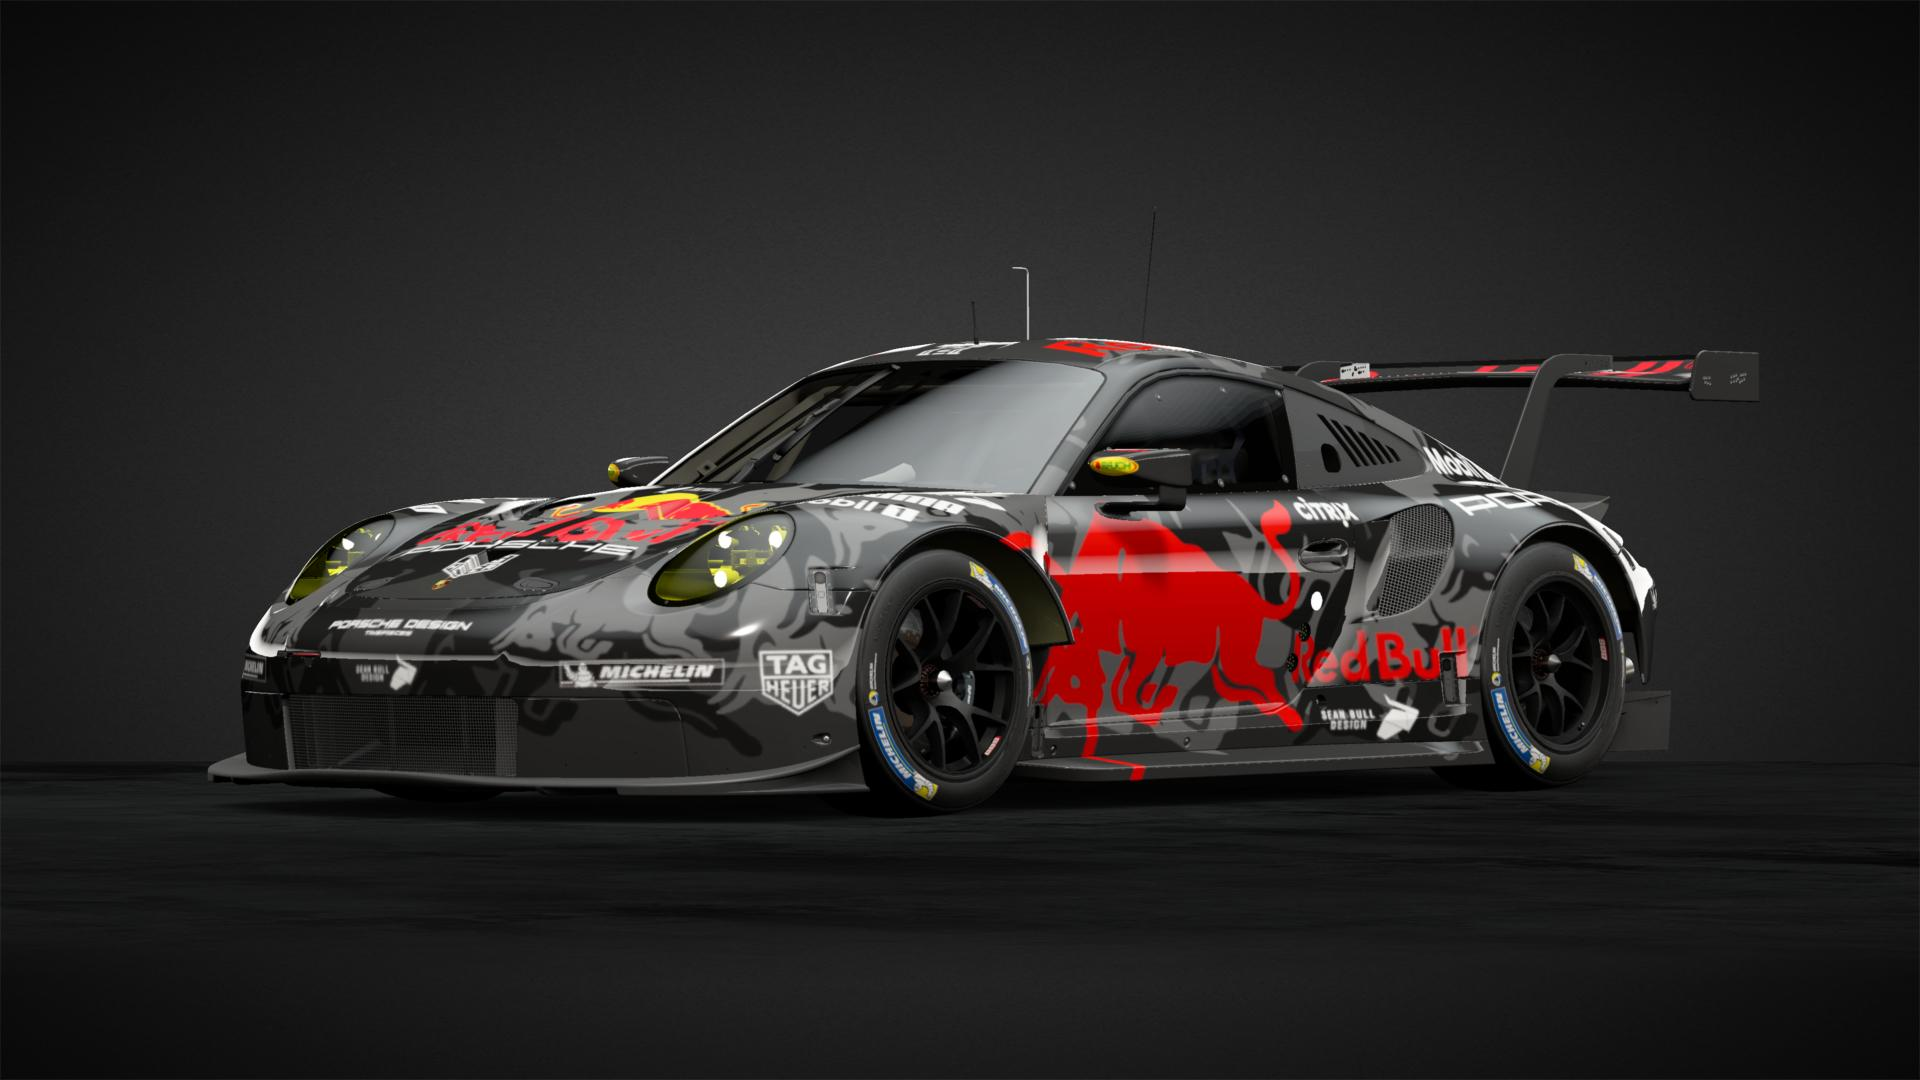 Wallpaper Mobil Sport Hd My First Livery In Gt Sport Adaption Of My Red Bull